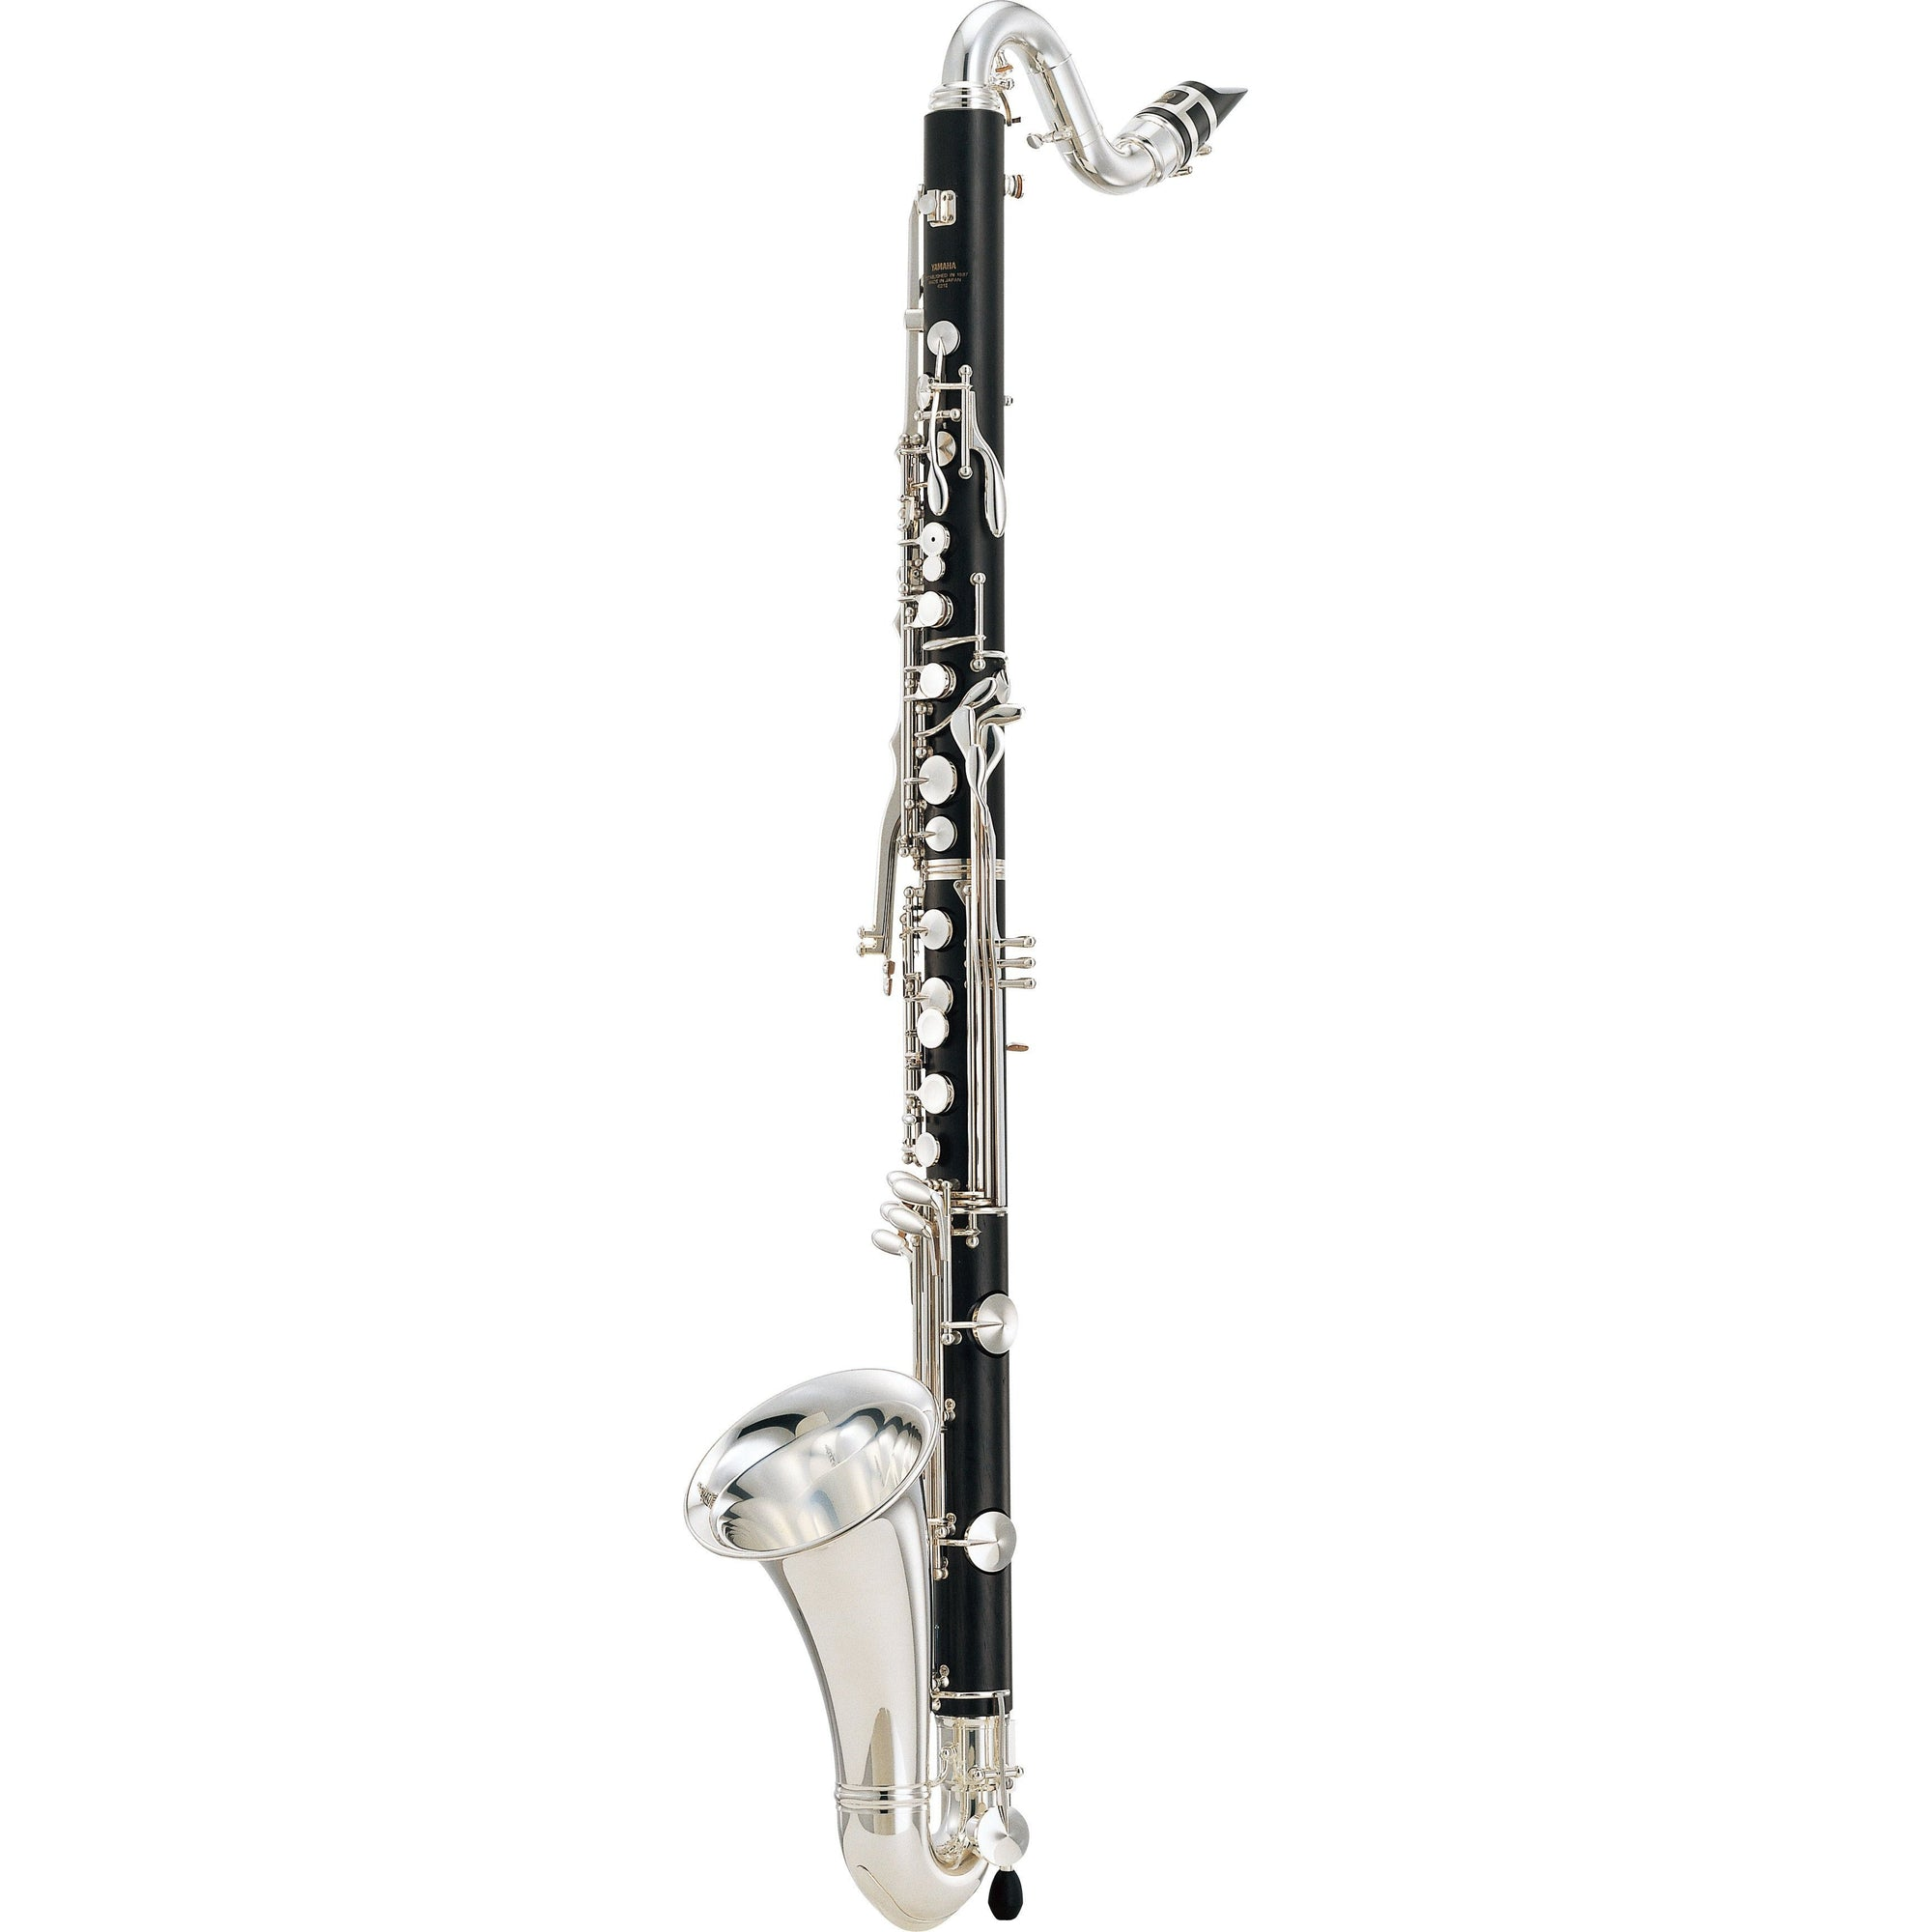 Yamaha - YCL-621II - Professional Bb Bass Clarinet-Clarinet-Yamaha-Music Elements